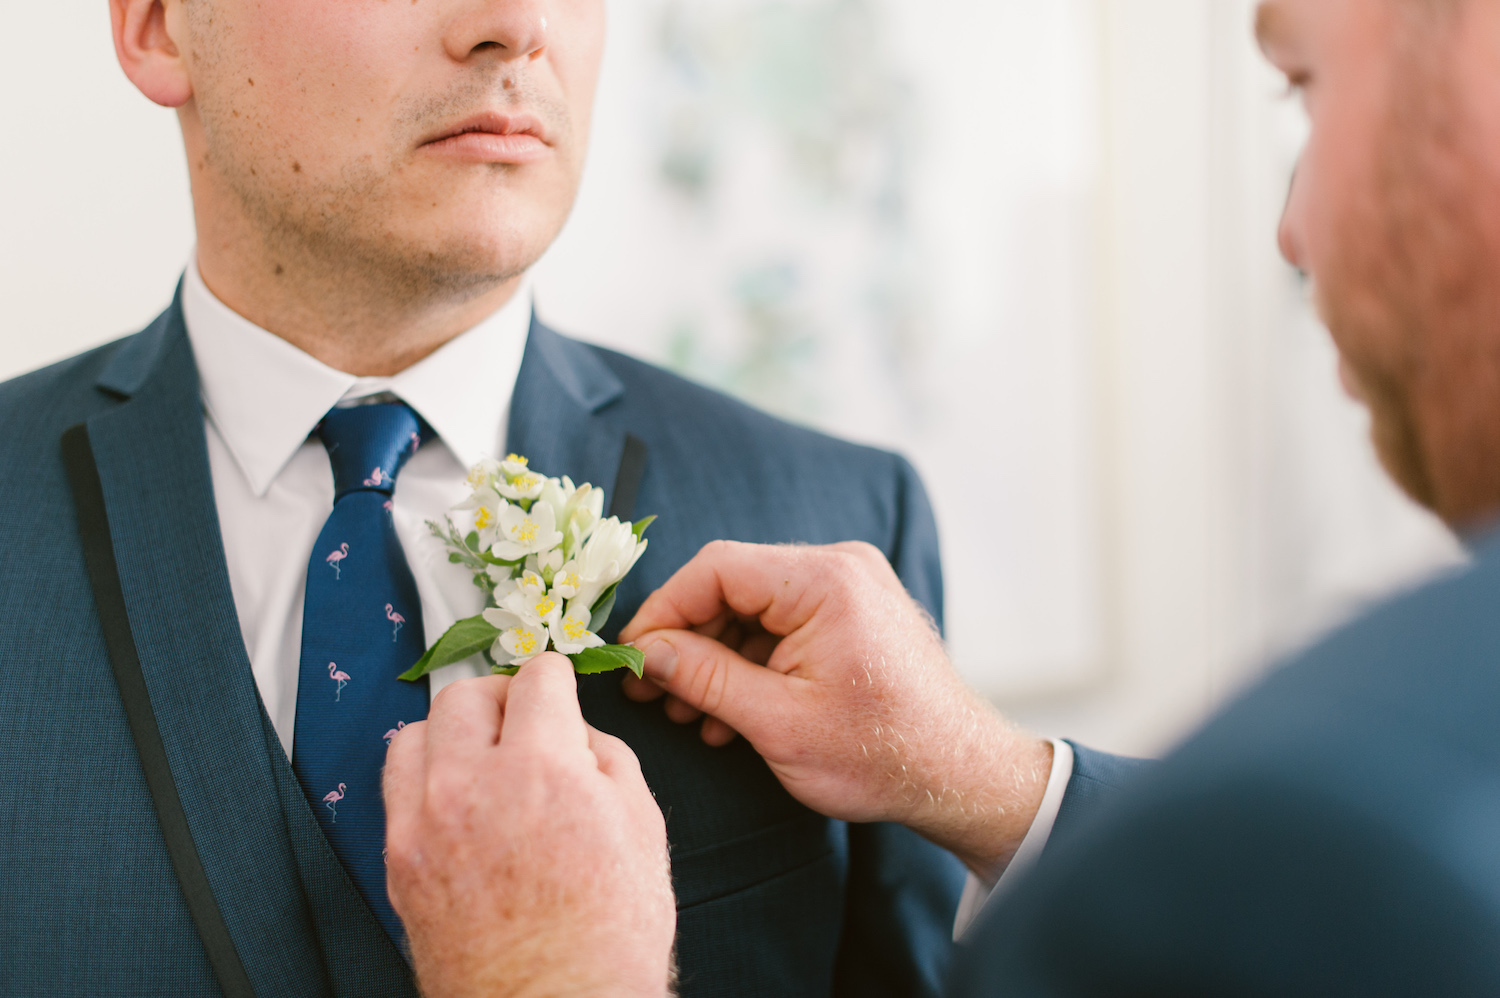 Orange blossom boutonniere by San Diego wedding florist, Compass Floral.